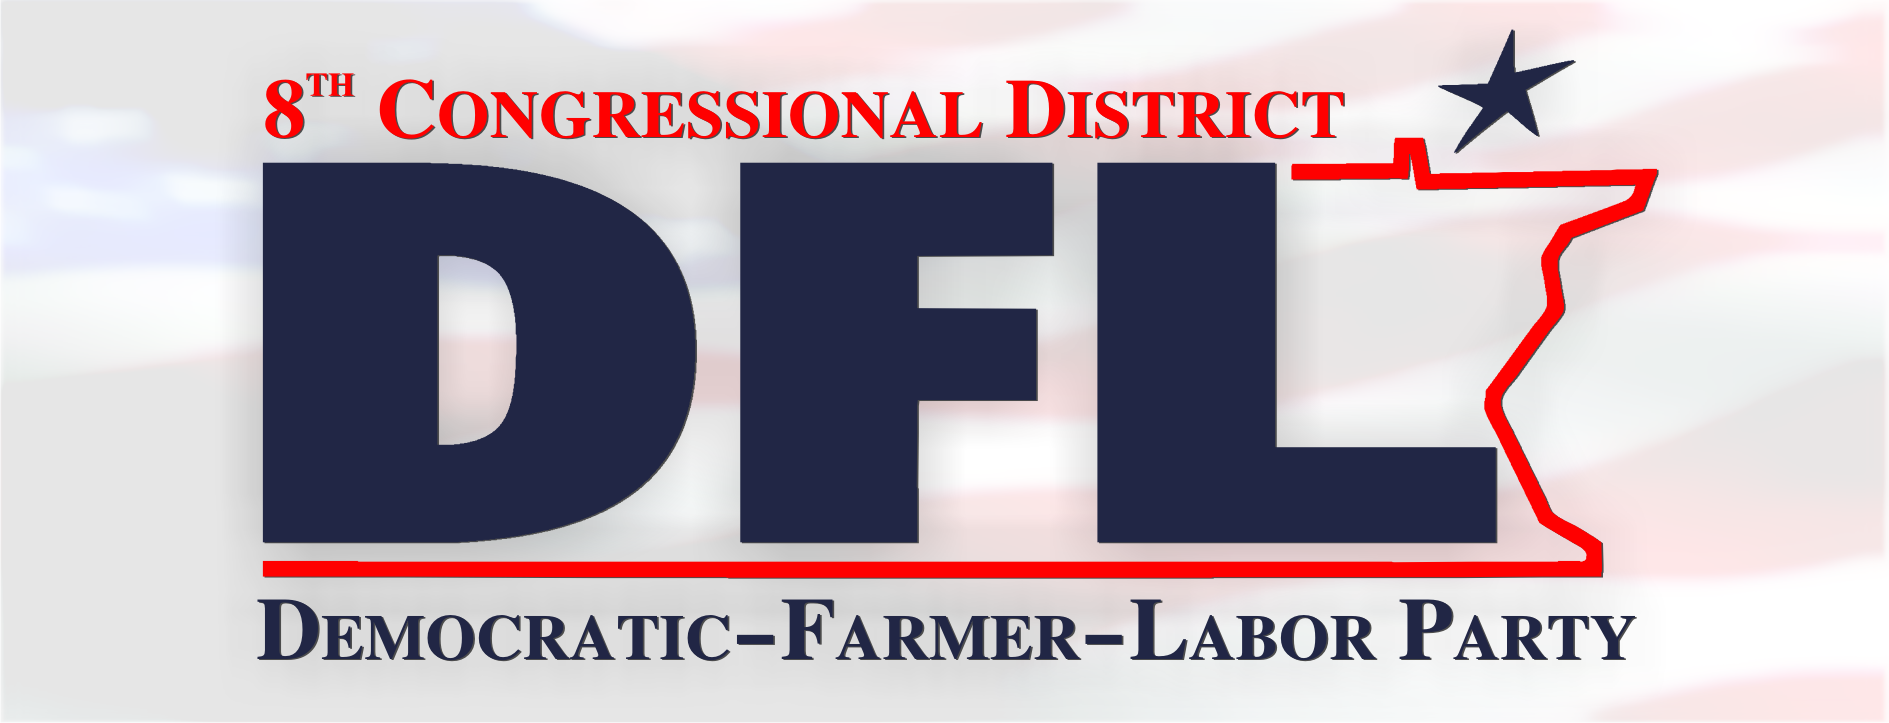 8th Congressional District - MN DFL